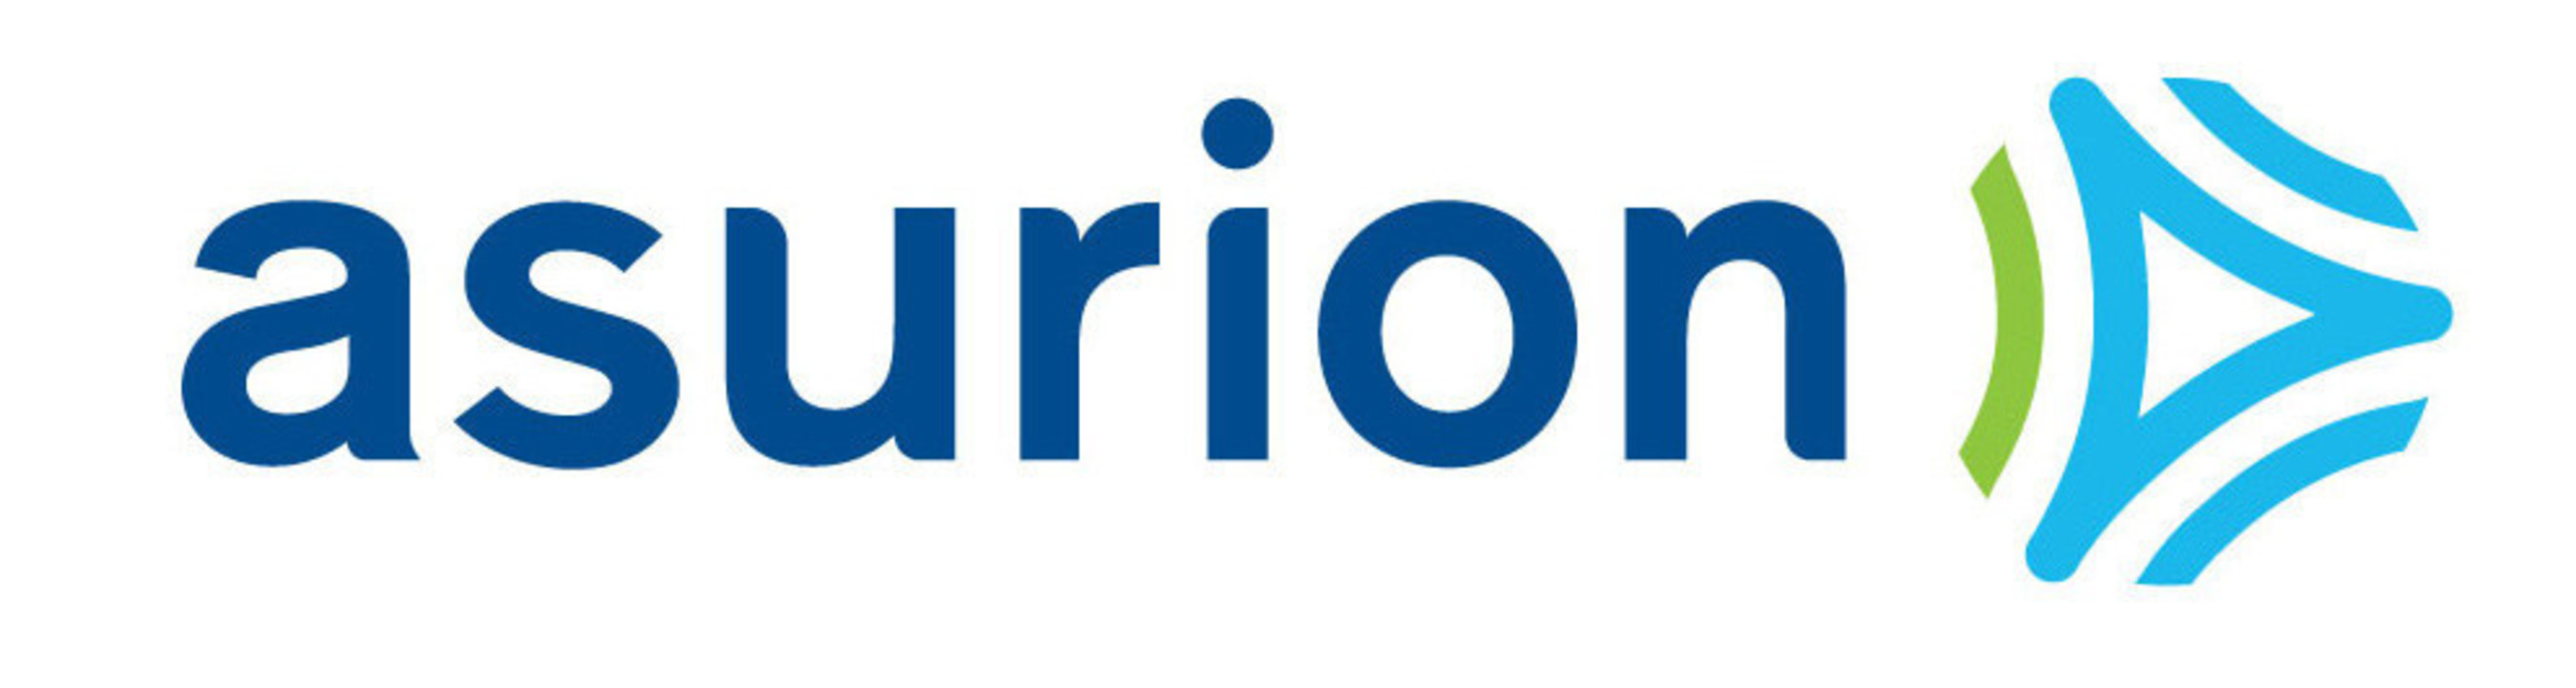 Asurion Recognized by ConfirmIt for Customer Excellence and 'Best Use of Feedback'